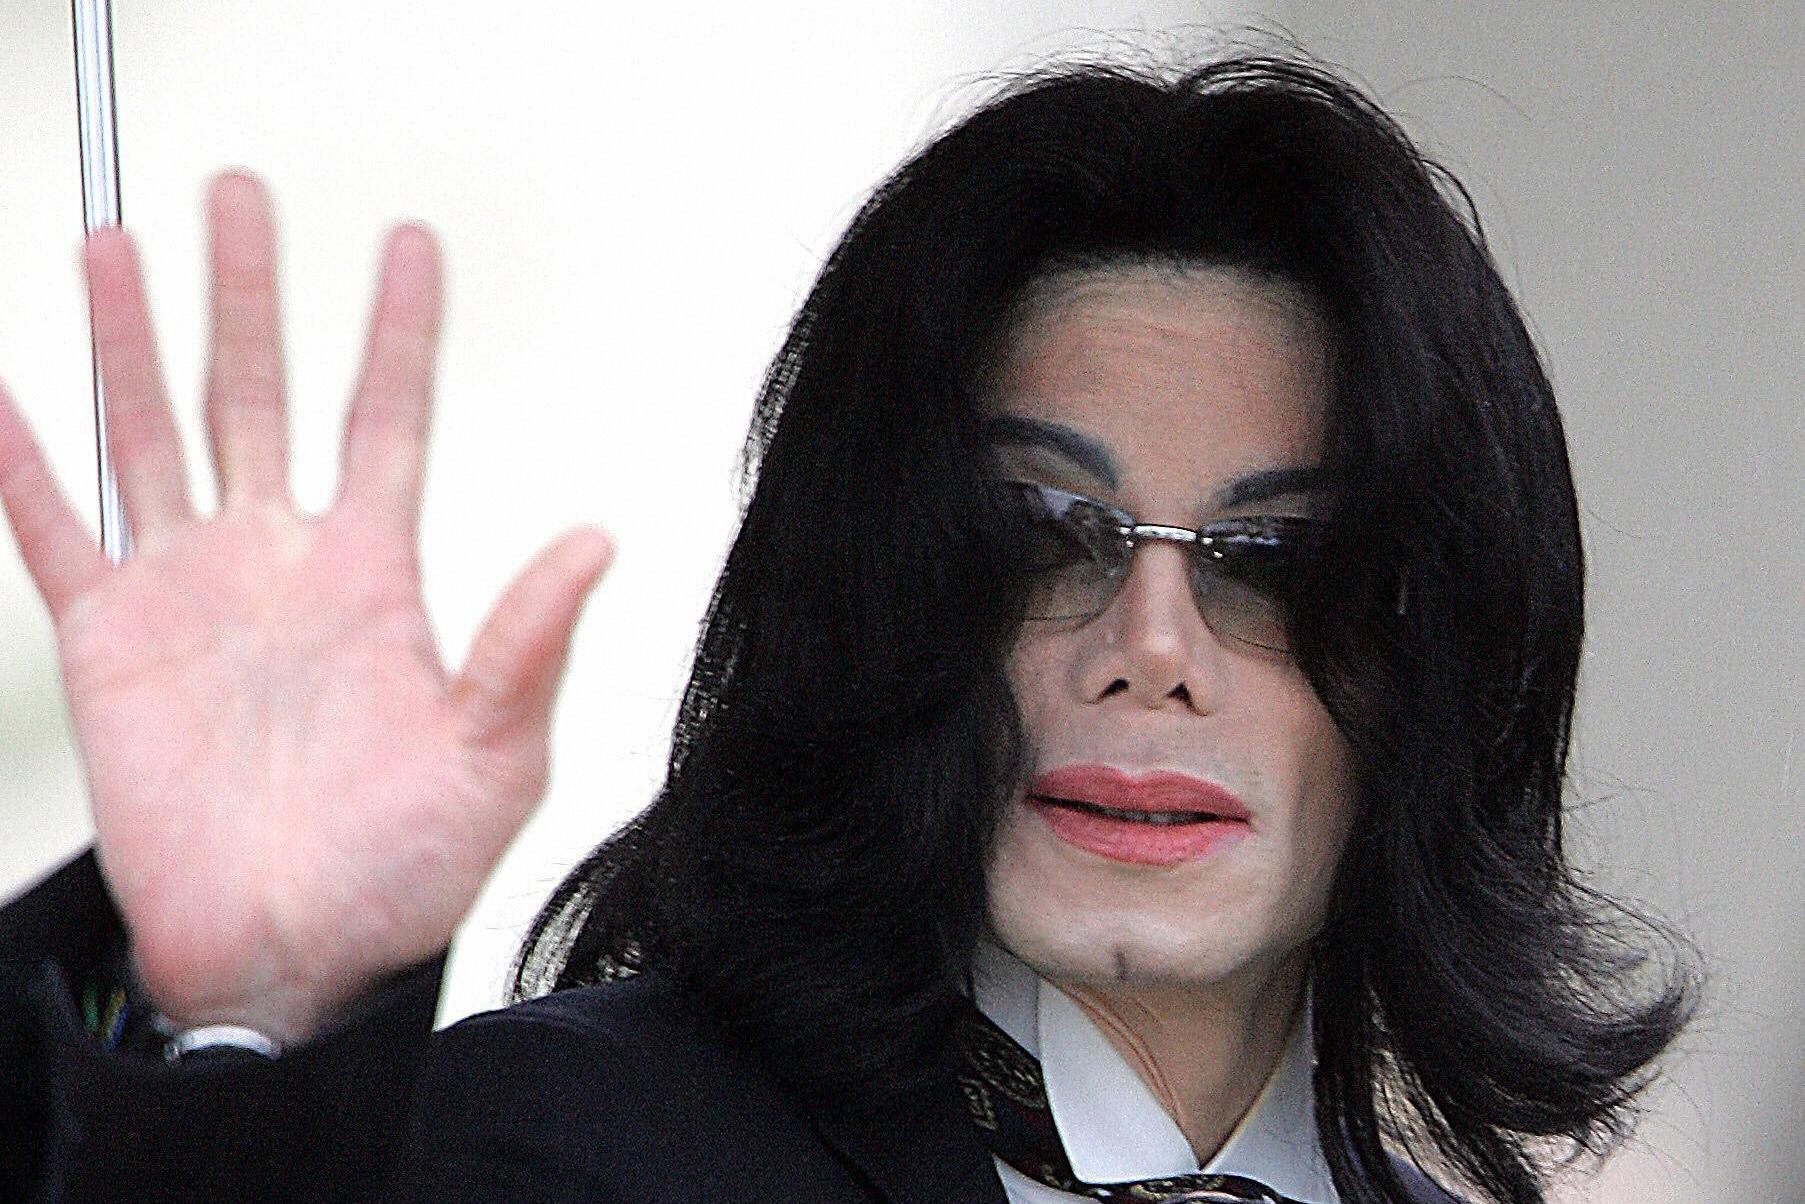 Michael Jackson really WAS a repeat child sex abuser, new documentary claims as two new victims make explosive sex attack claims